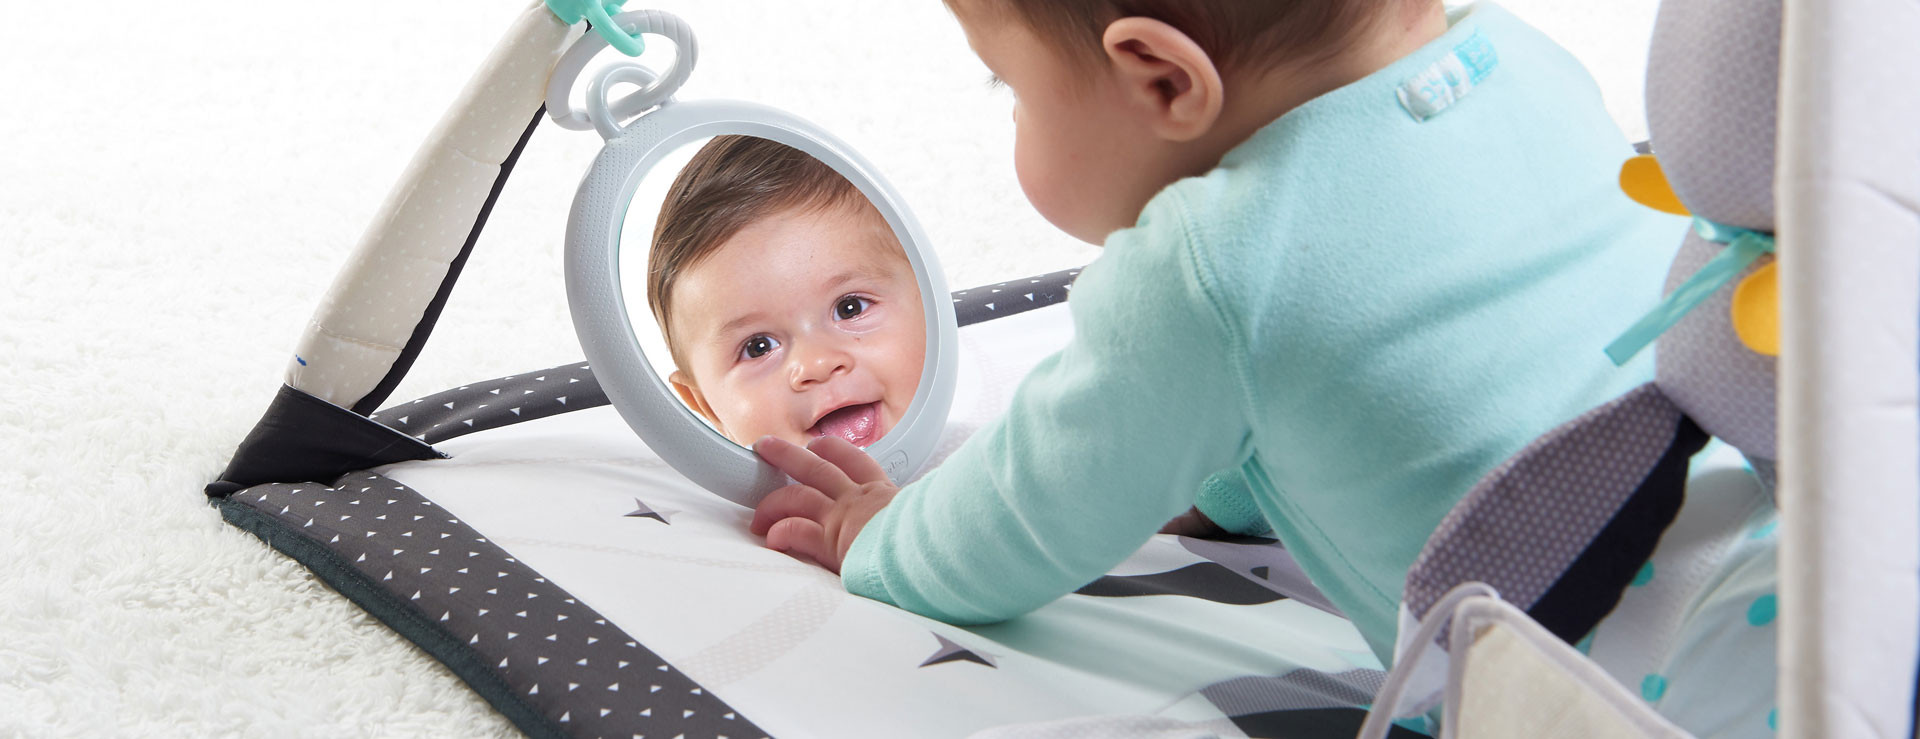 Engaging mirror helps extend tummy time